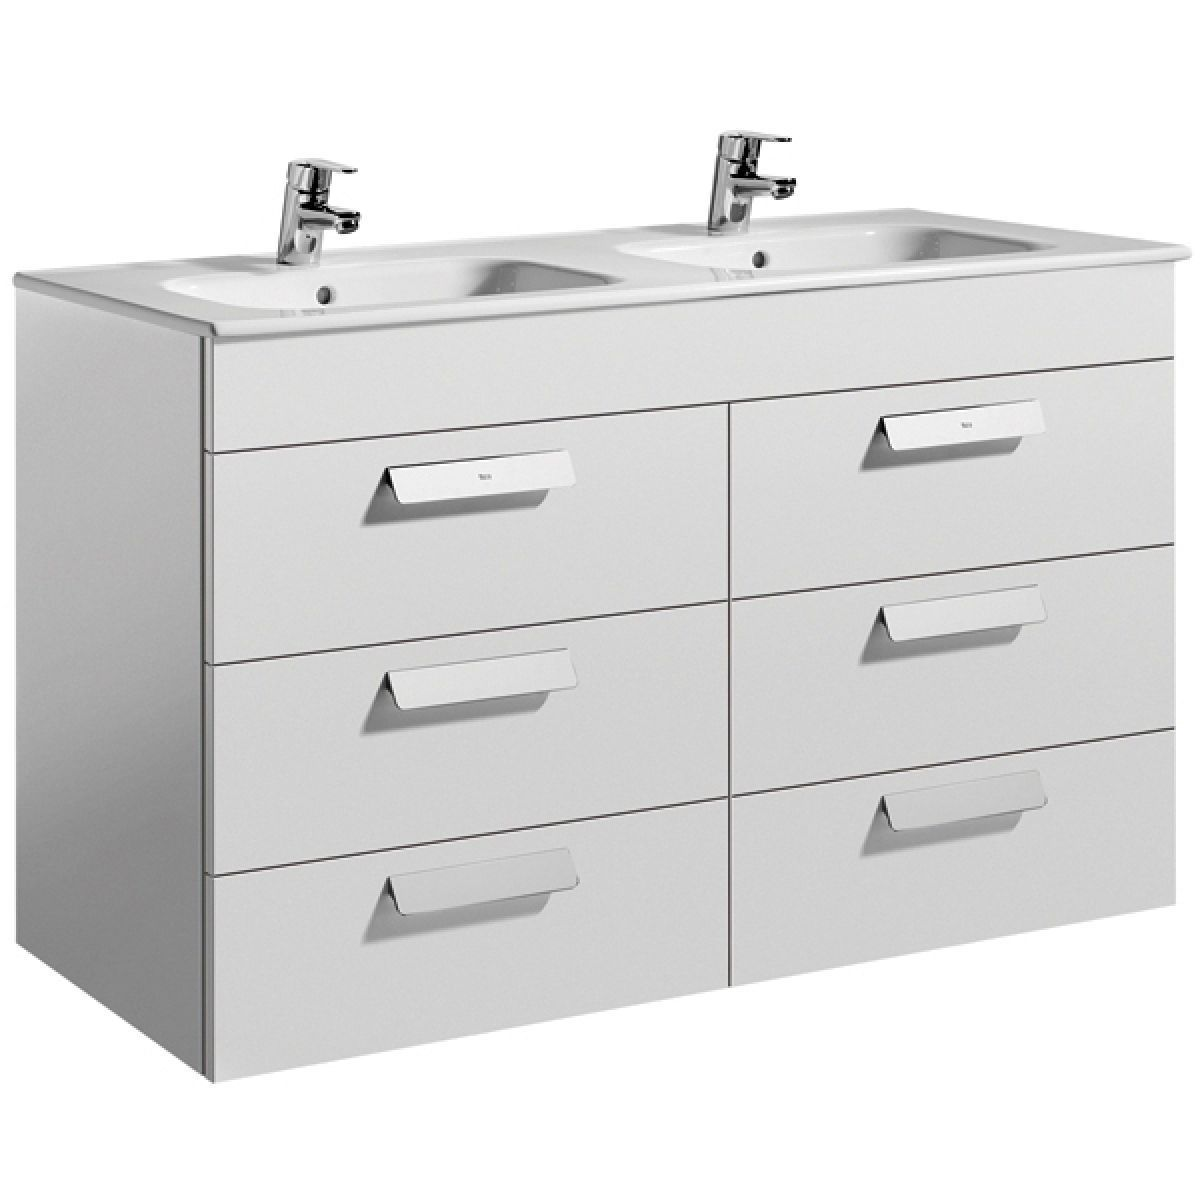 Exceptional ... Roca Debba Double Basin Vanity Unit With Drawers ...